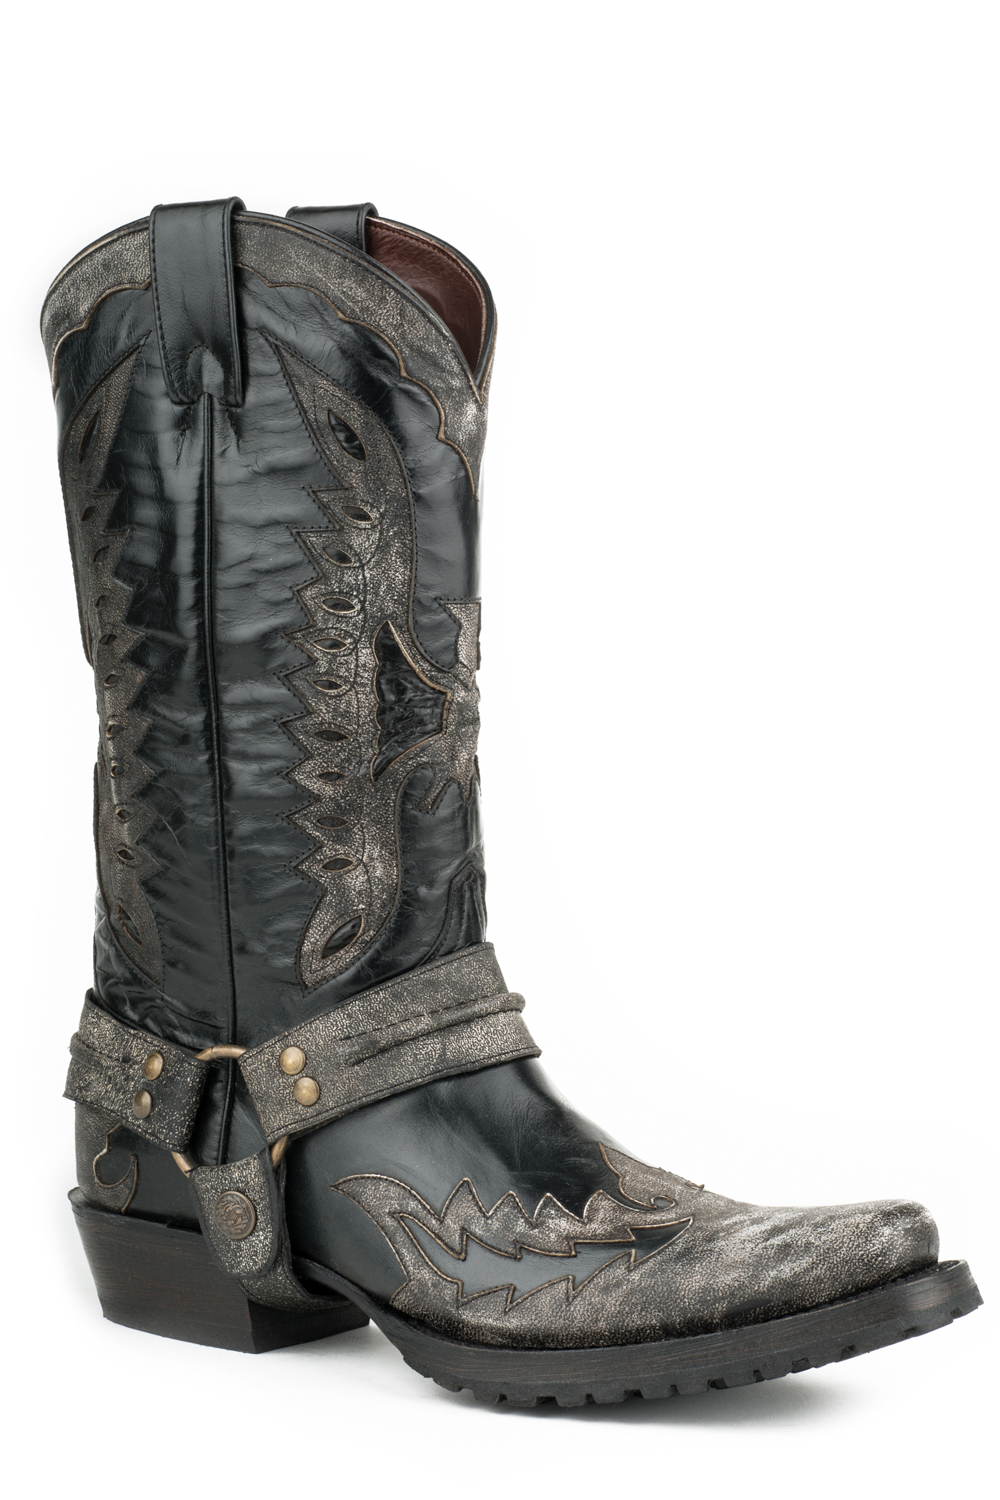 stetson outlaw eagle biker mens black leather distressed